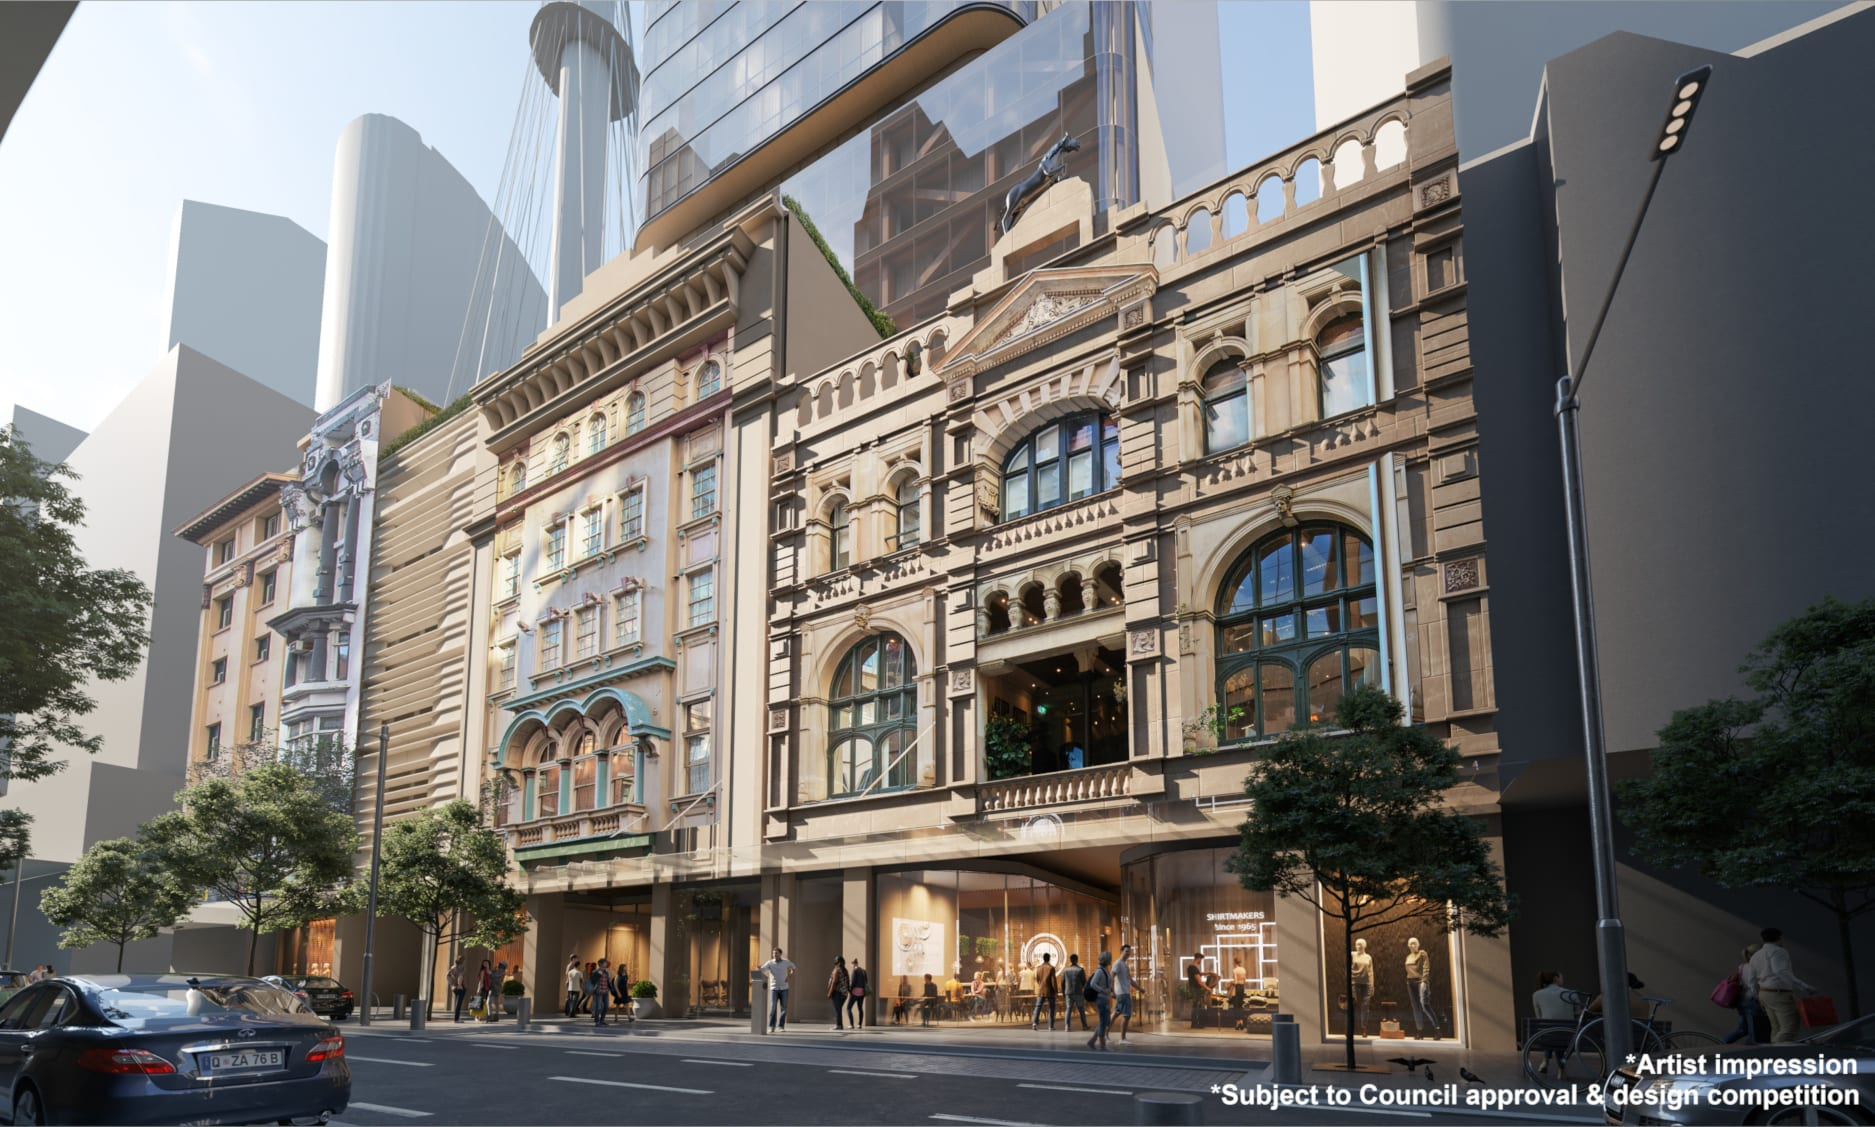 Sydney's City Tattersalls Club gains approval for redevelopment